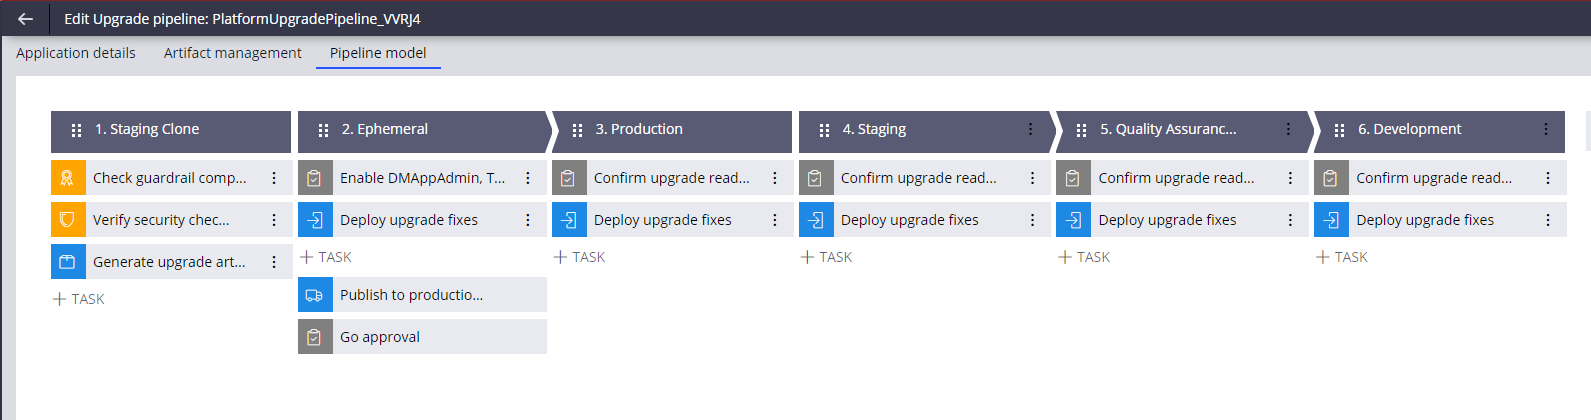 Process for promoting upgrade fixes across environments